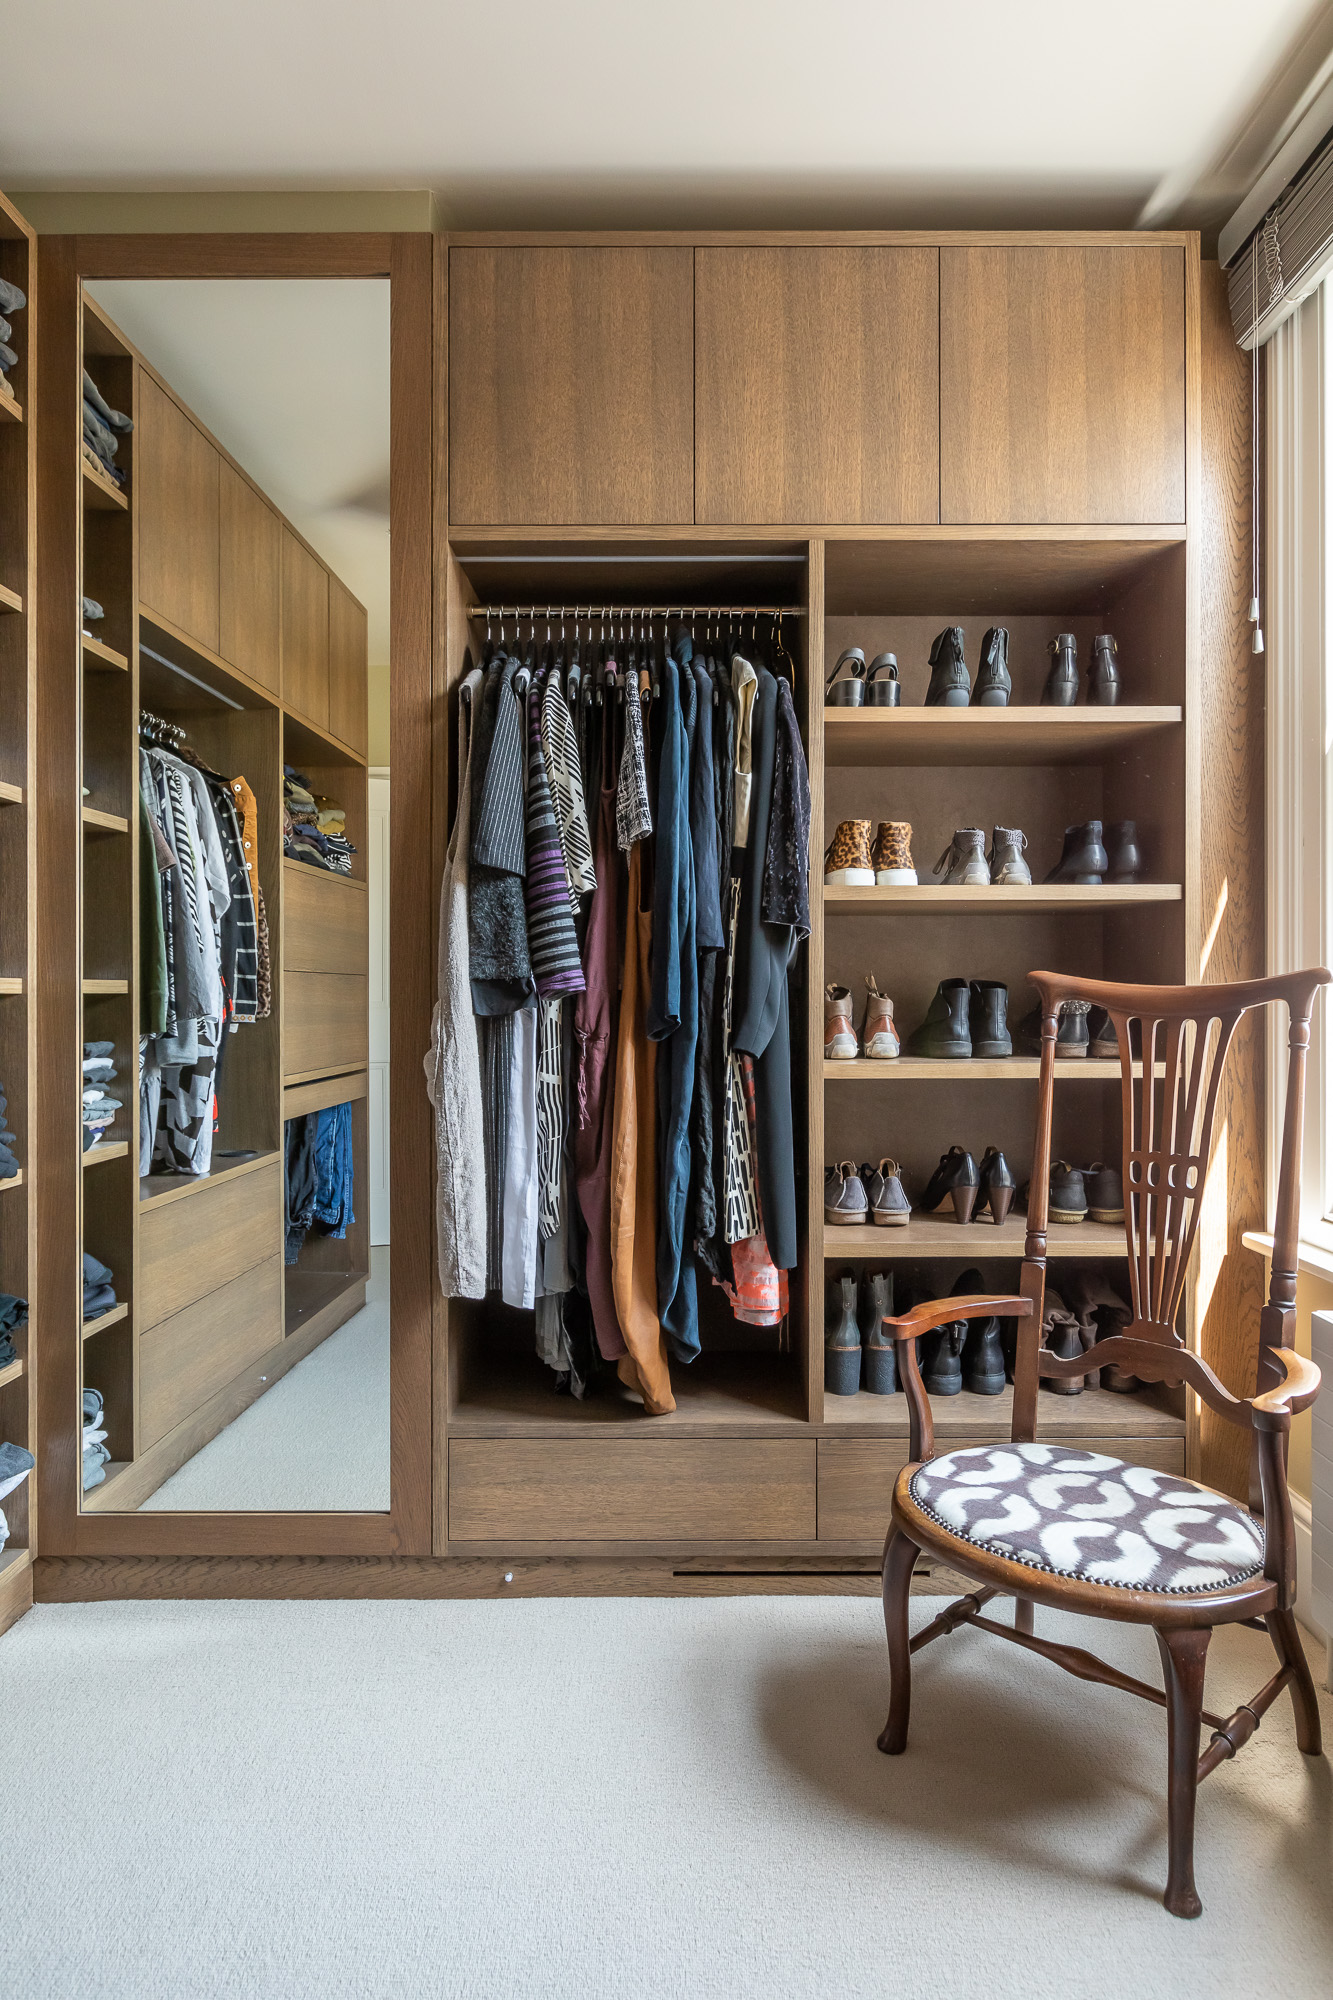 jonathan bond, bedroom wardrobe, mill road, cambridge